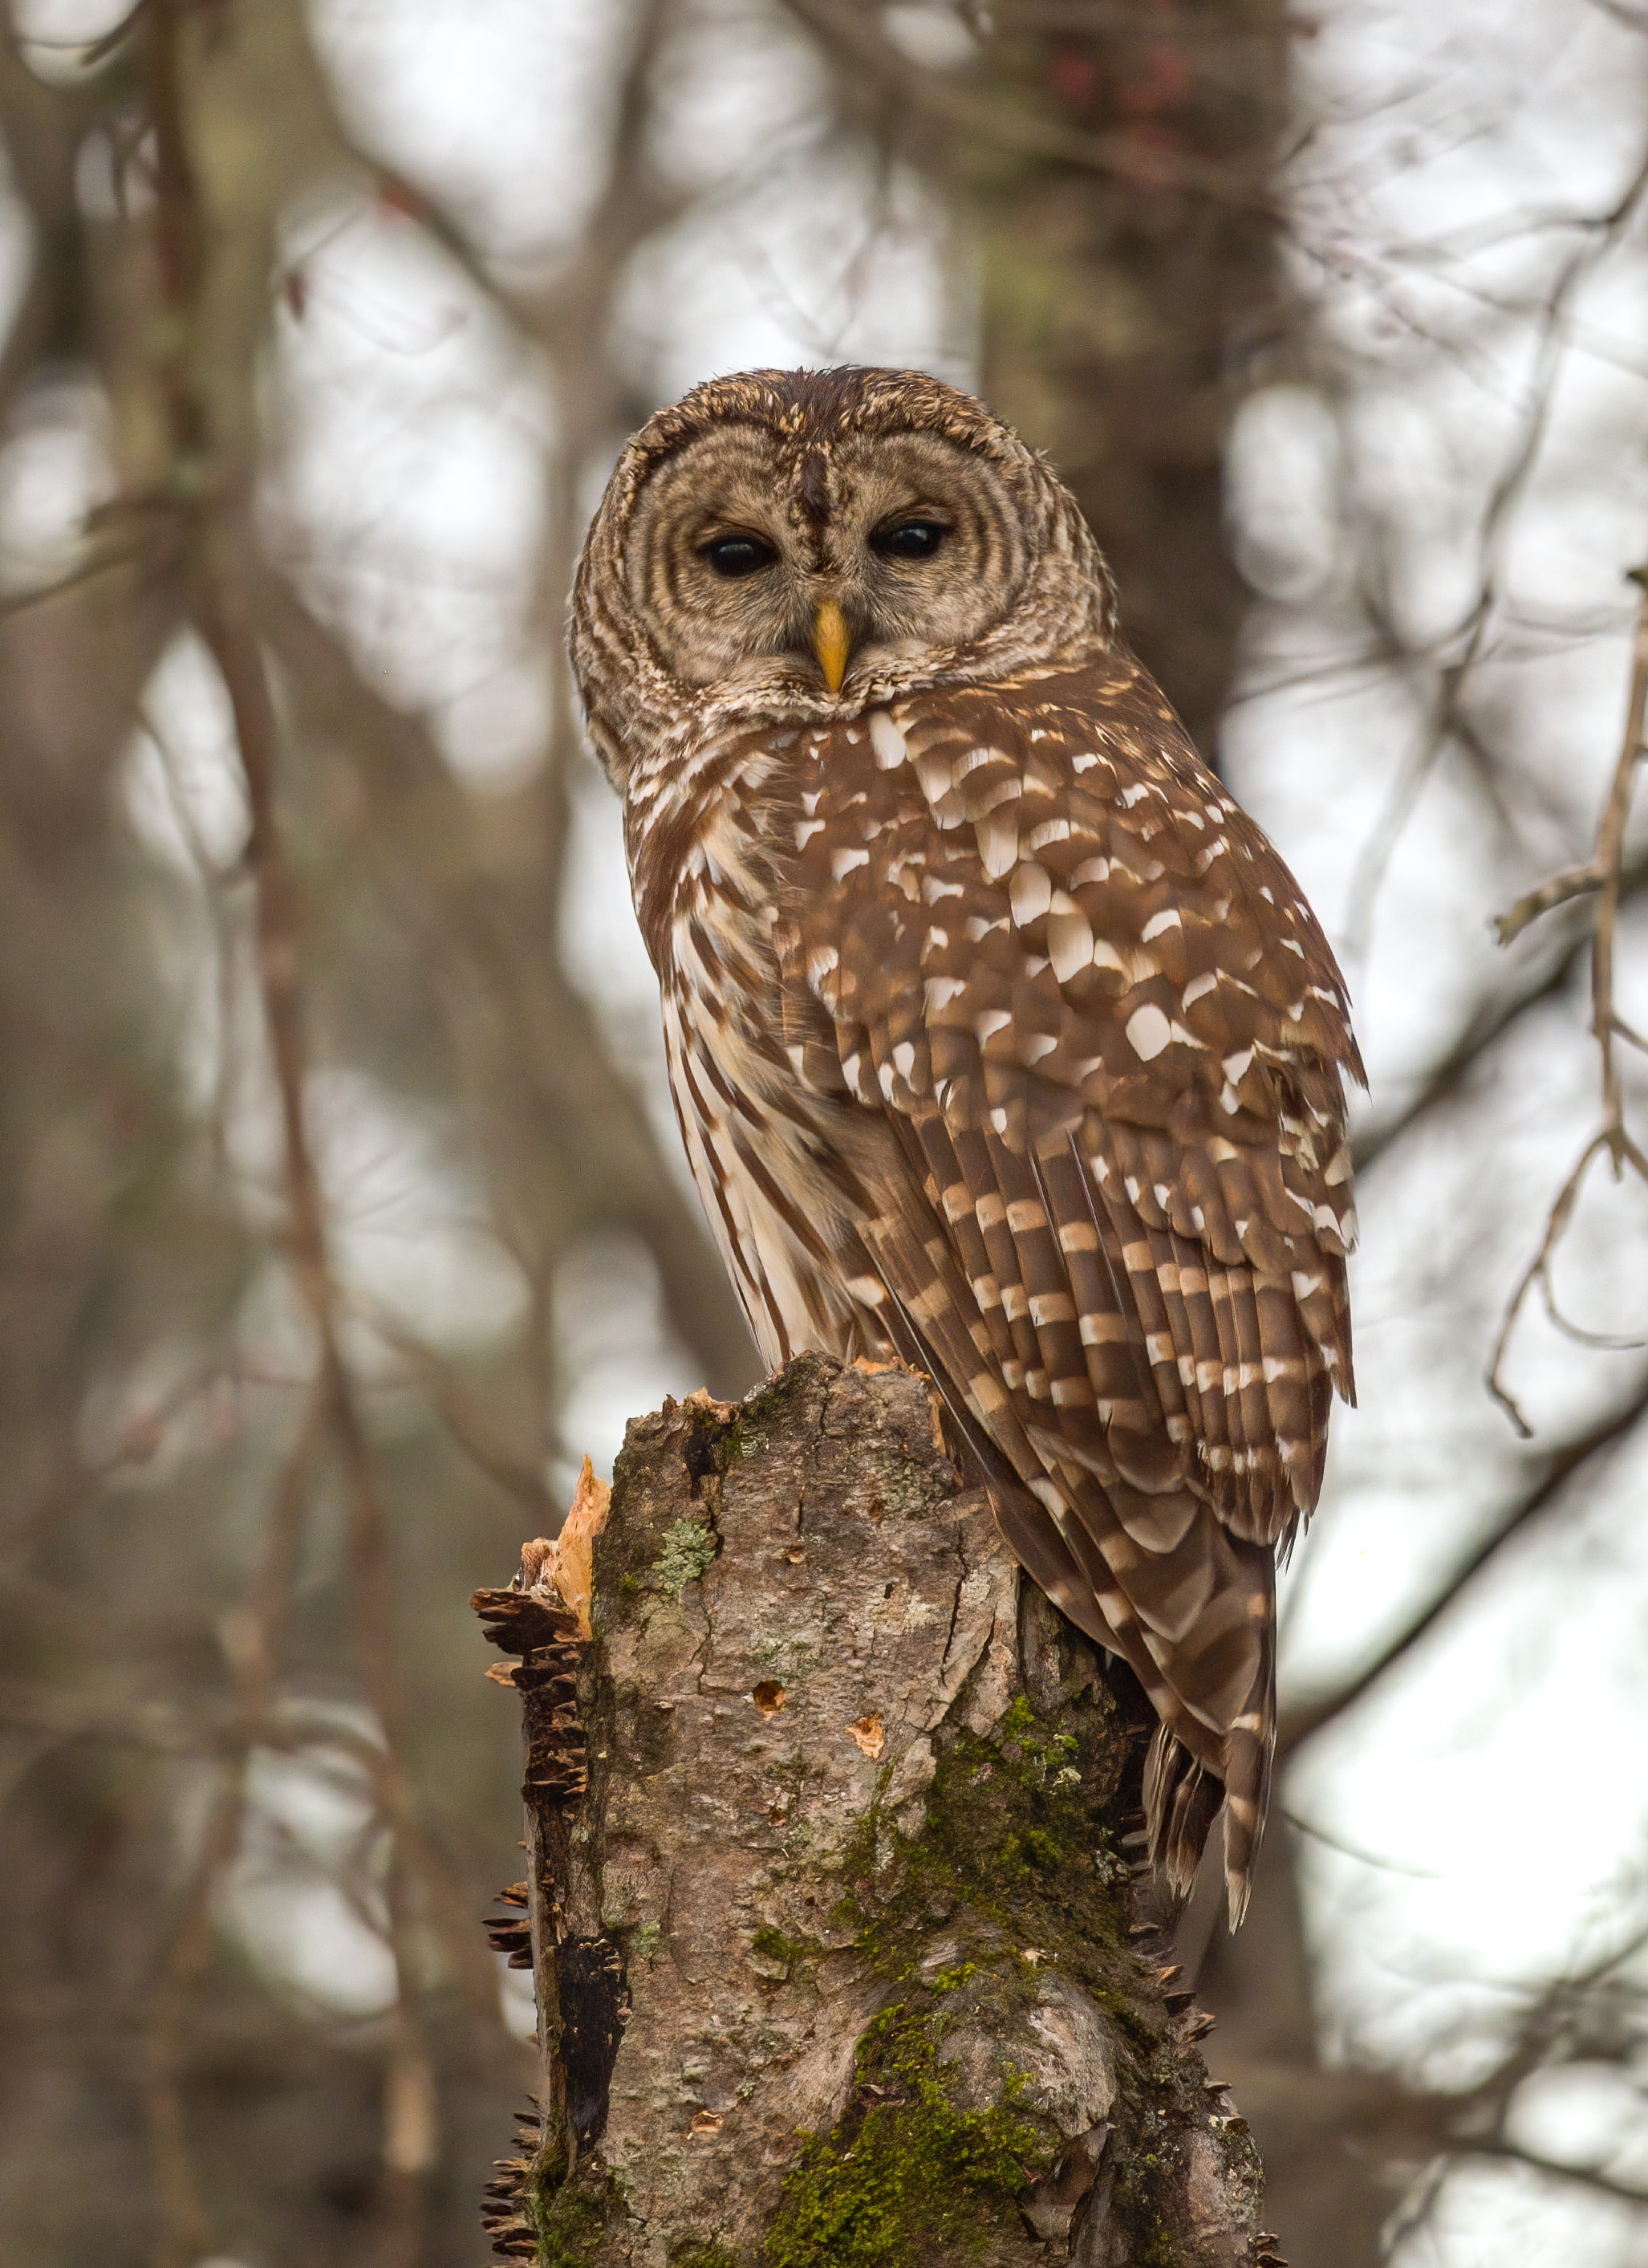 78362 download wallpaper Animals, Tawny Owl, Owl, Bird, Wood, Tree, Feather screensavers and pictures for free